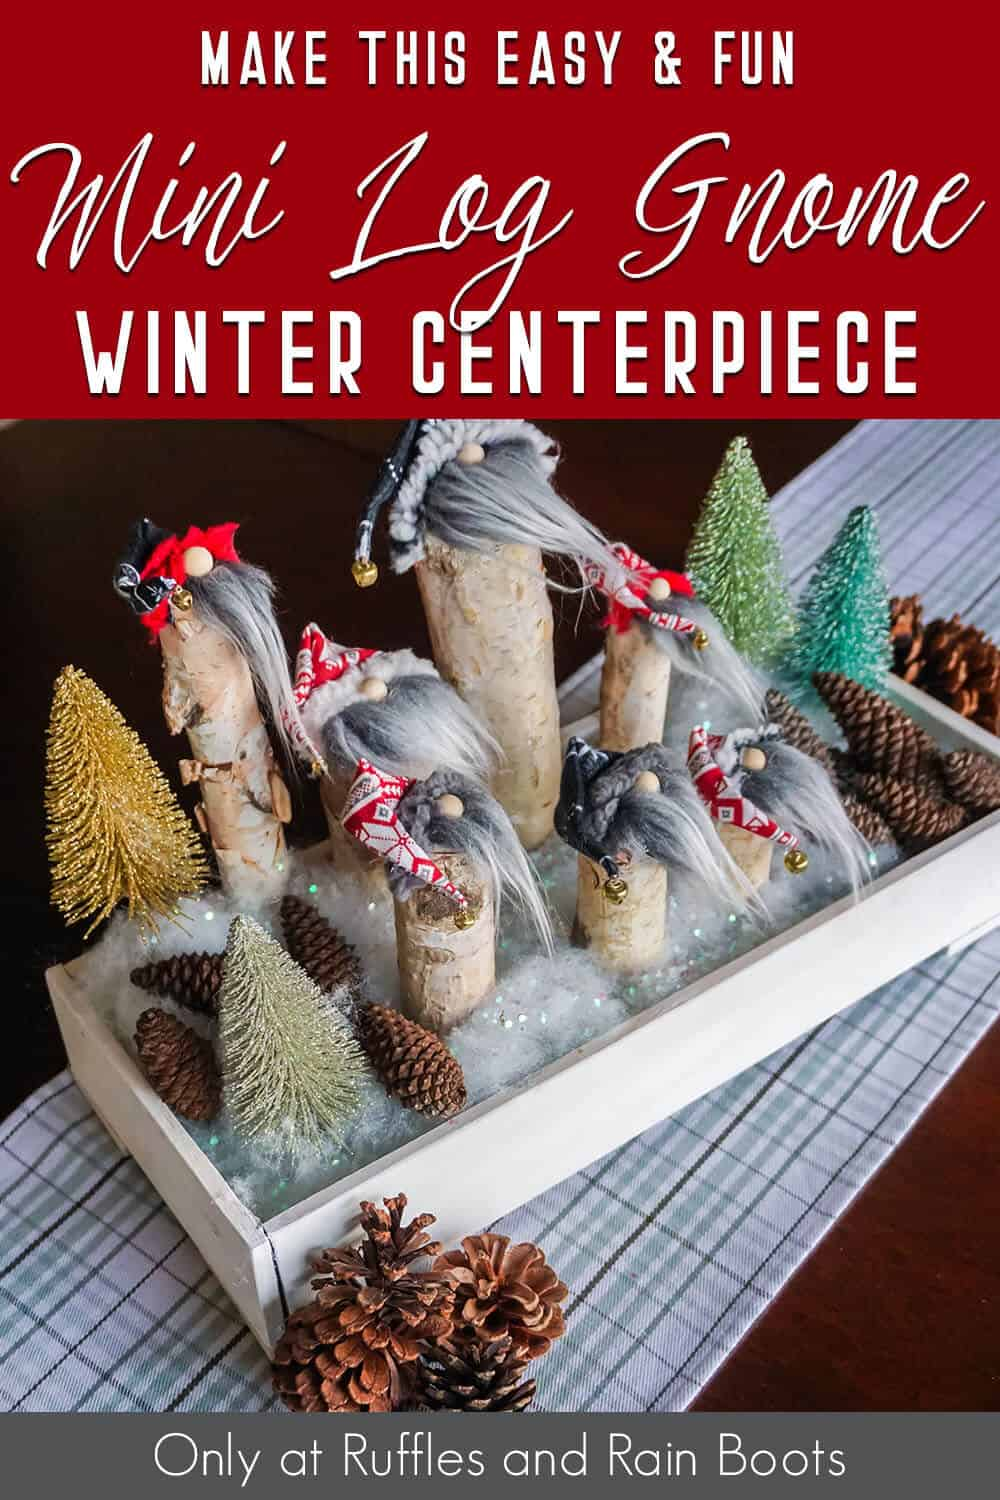 mini stick gnome centerpiece for winter with text which reads make this easy & fun mini log gnome winter centerpiece